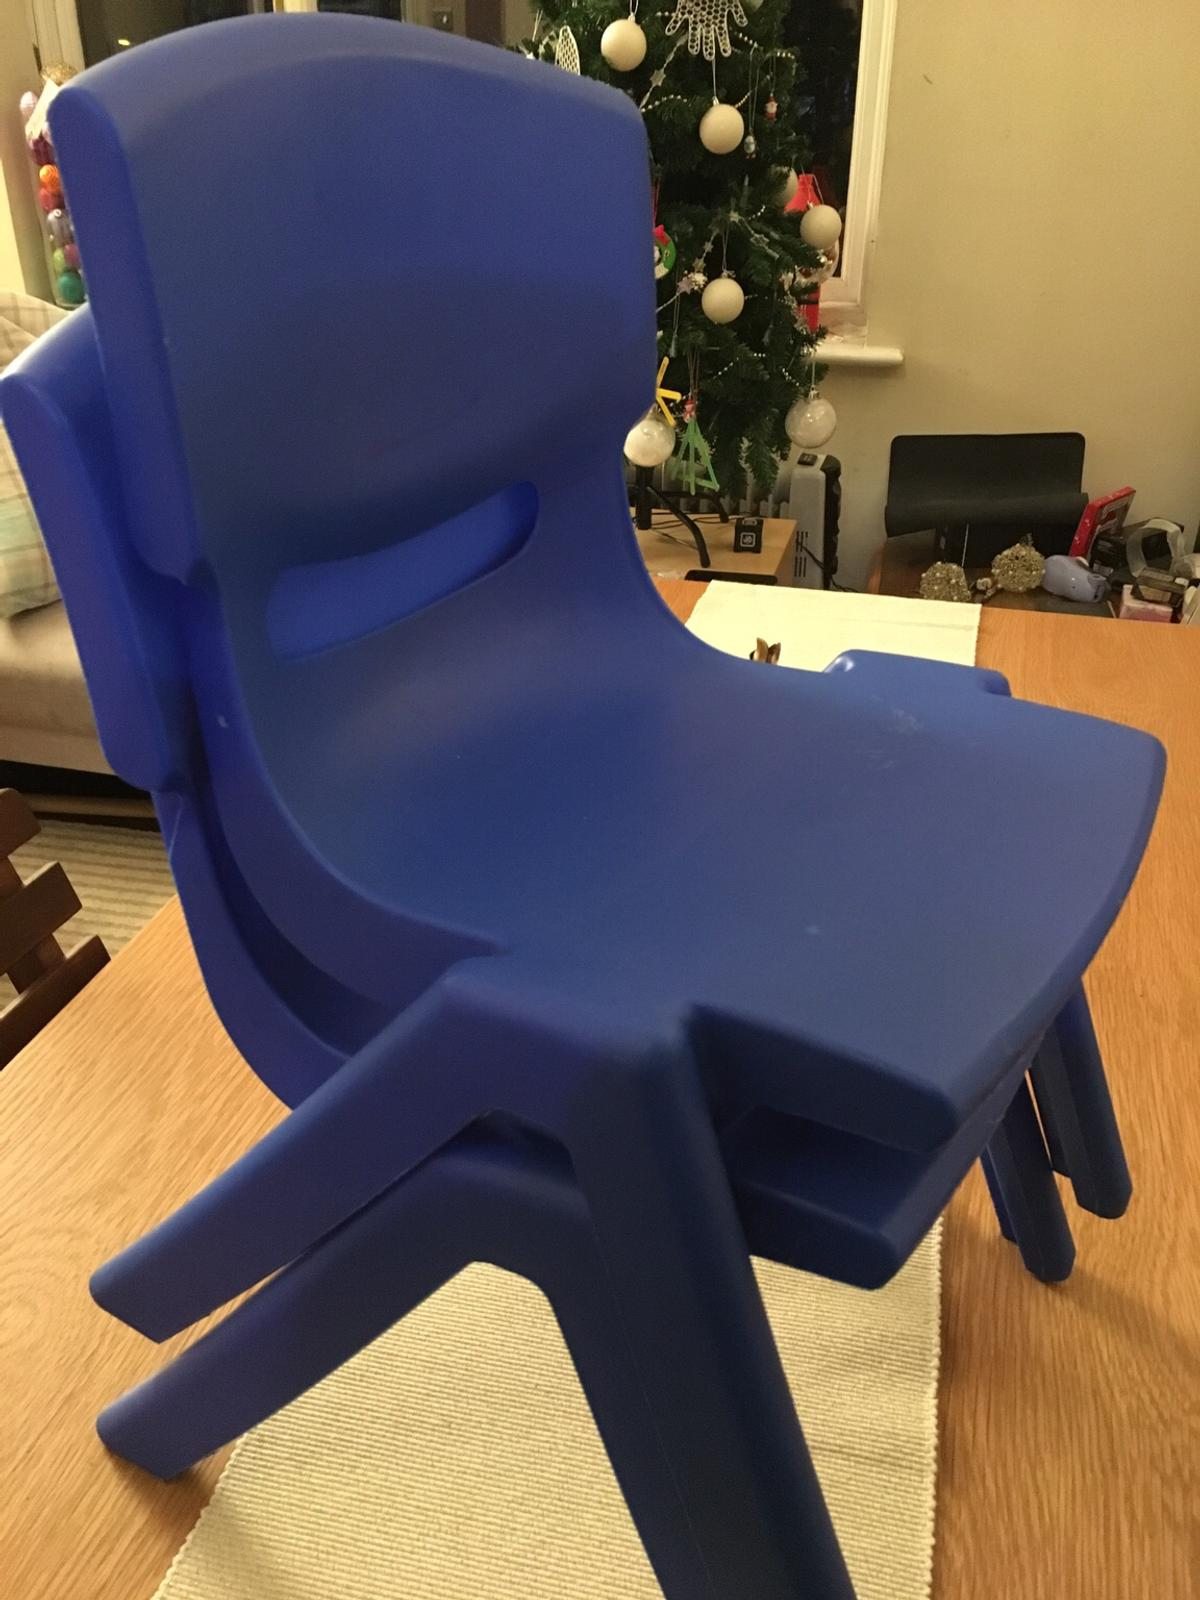 Stackable Children Plastic Chair Blue In Kt1 London For